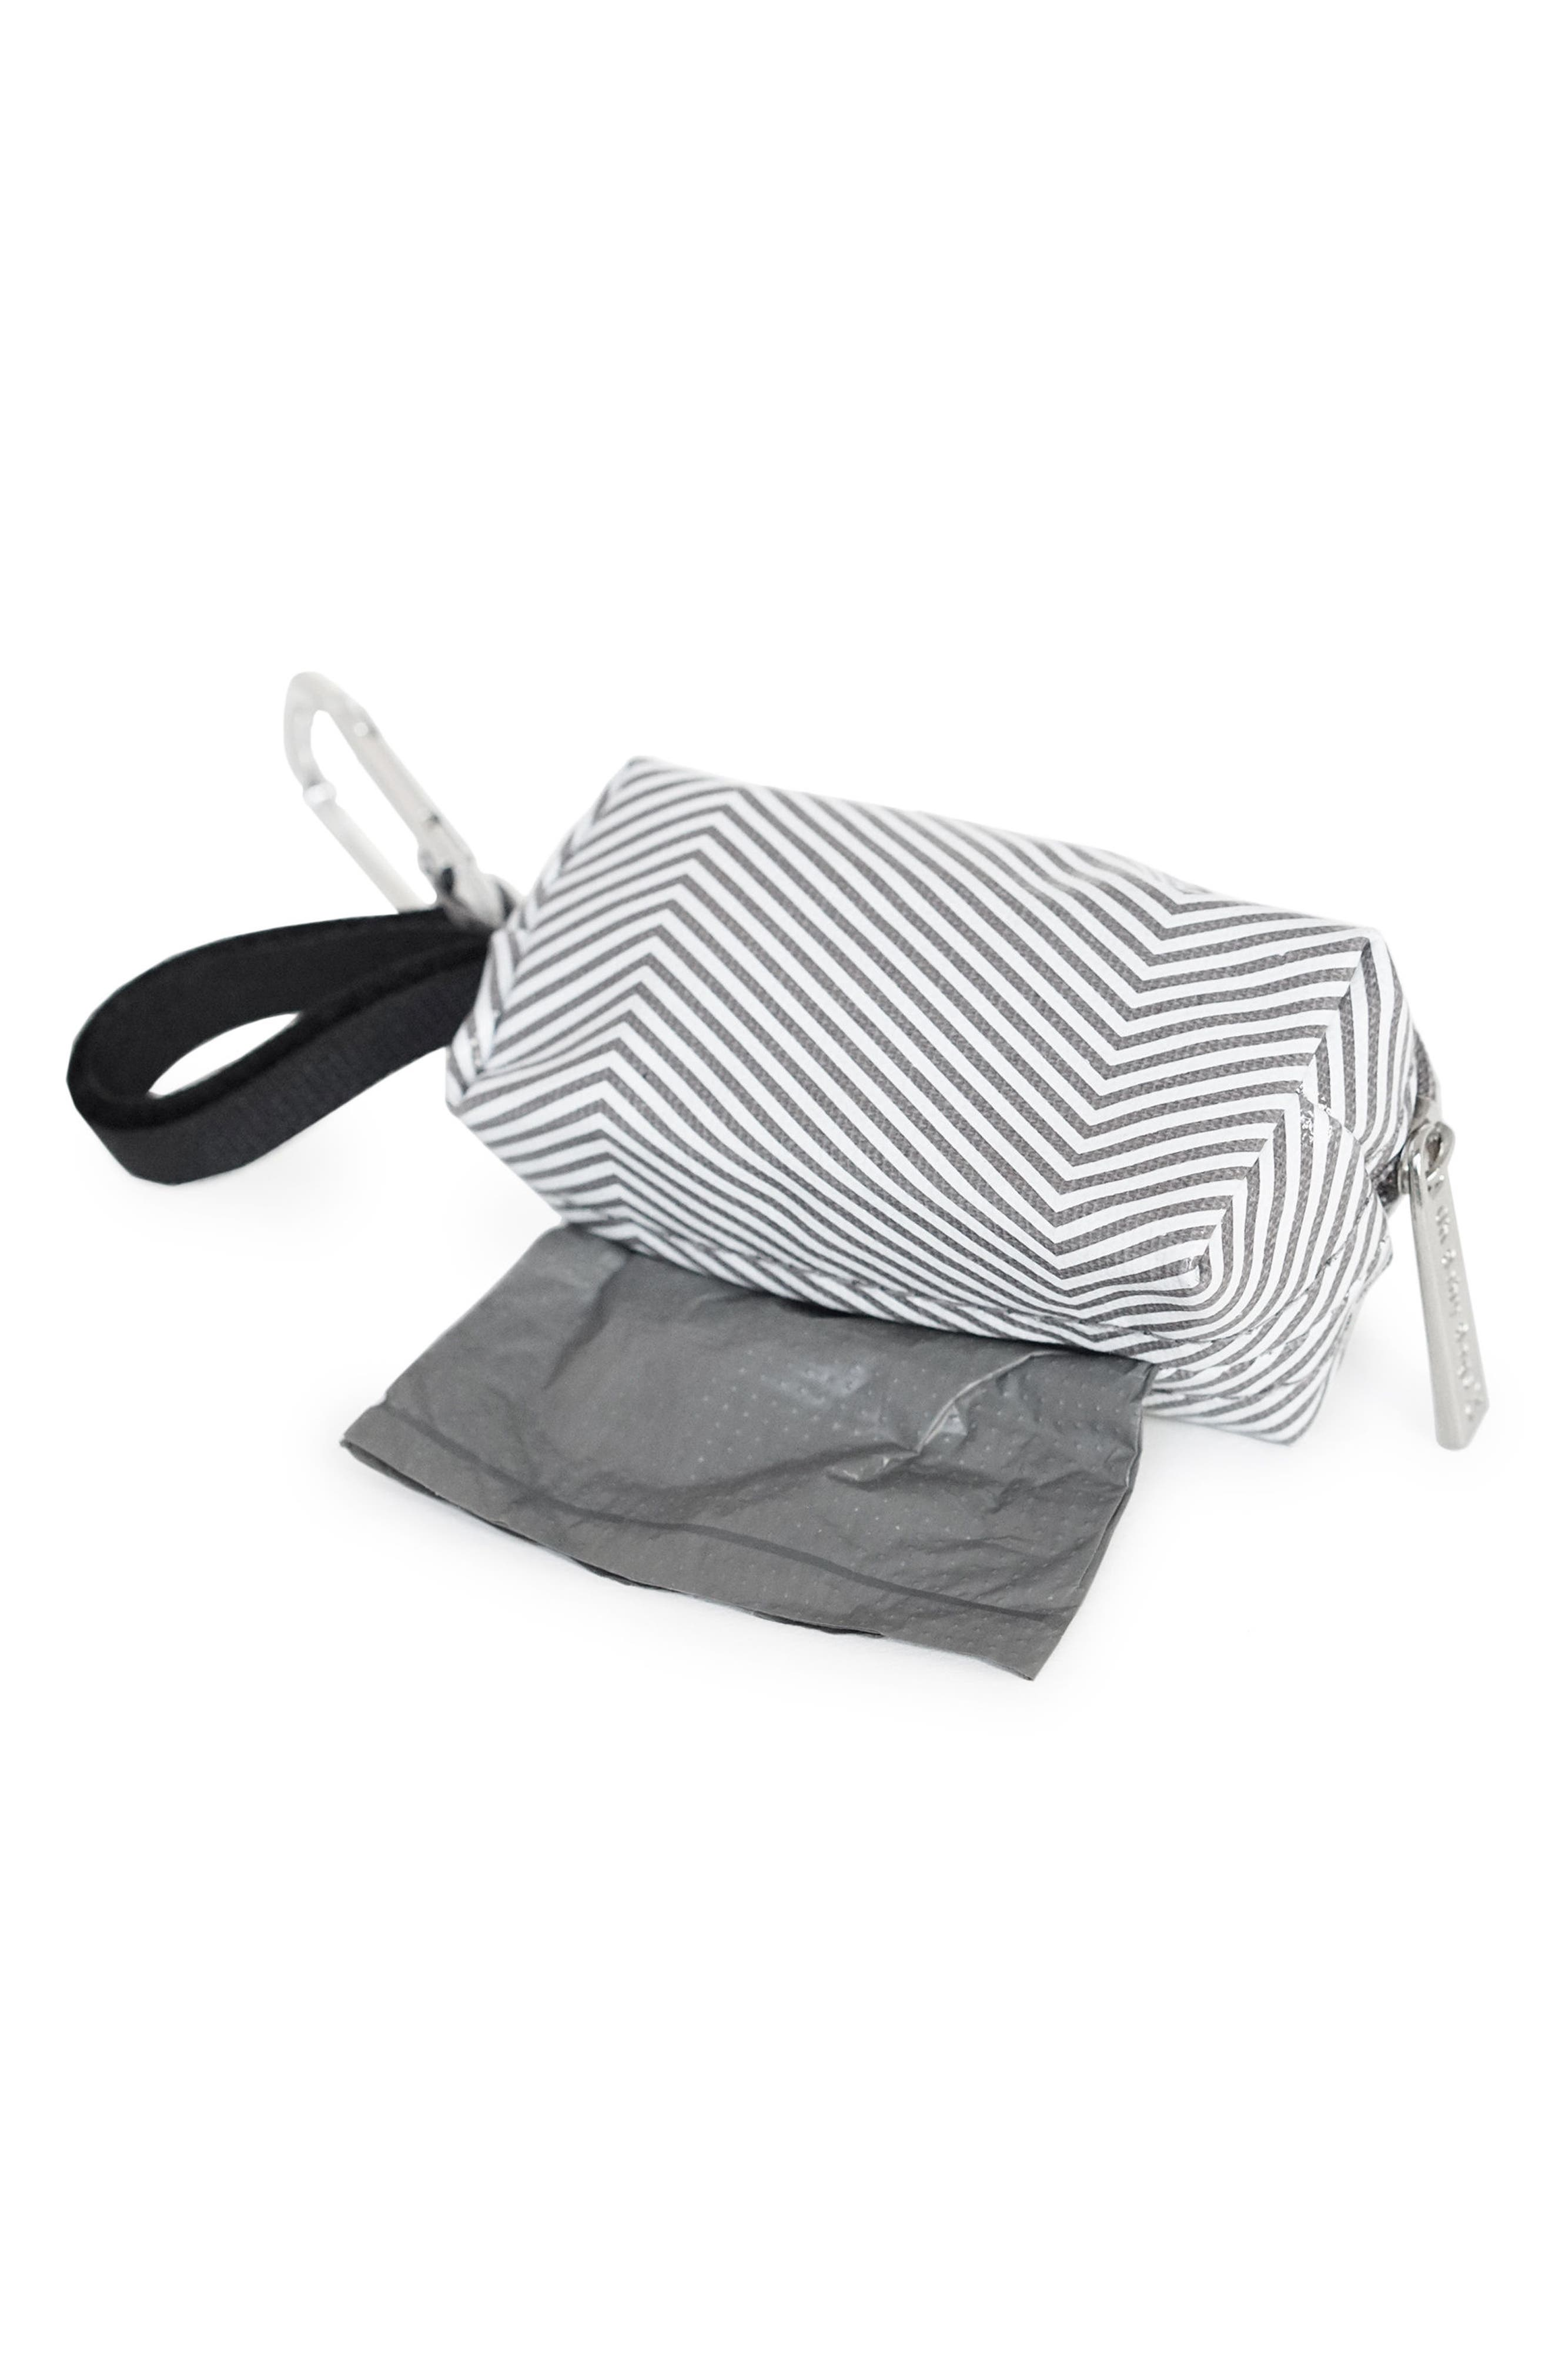 Portable Clip-On Dispenser with Bags,                             Alternate thumbnail 2, color,                             Grey Stripe